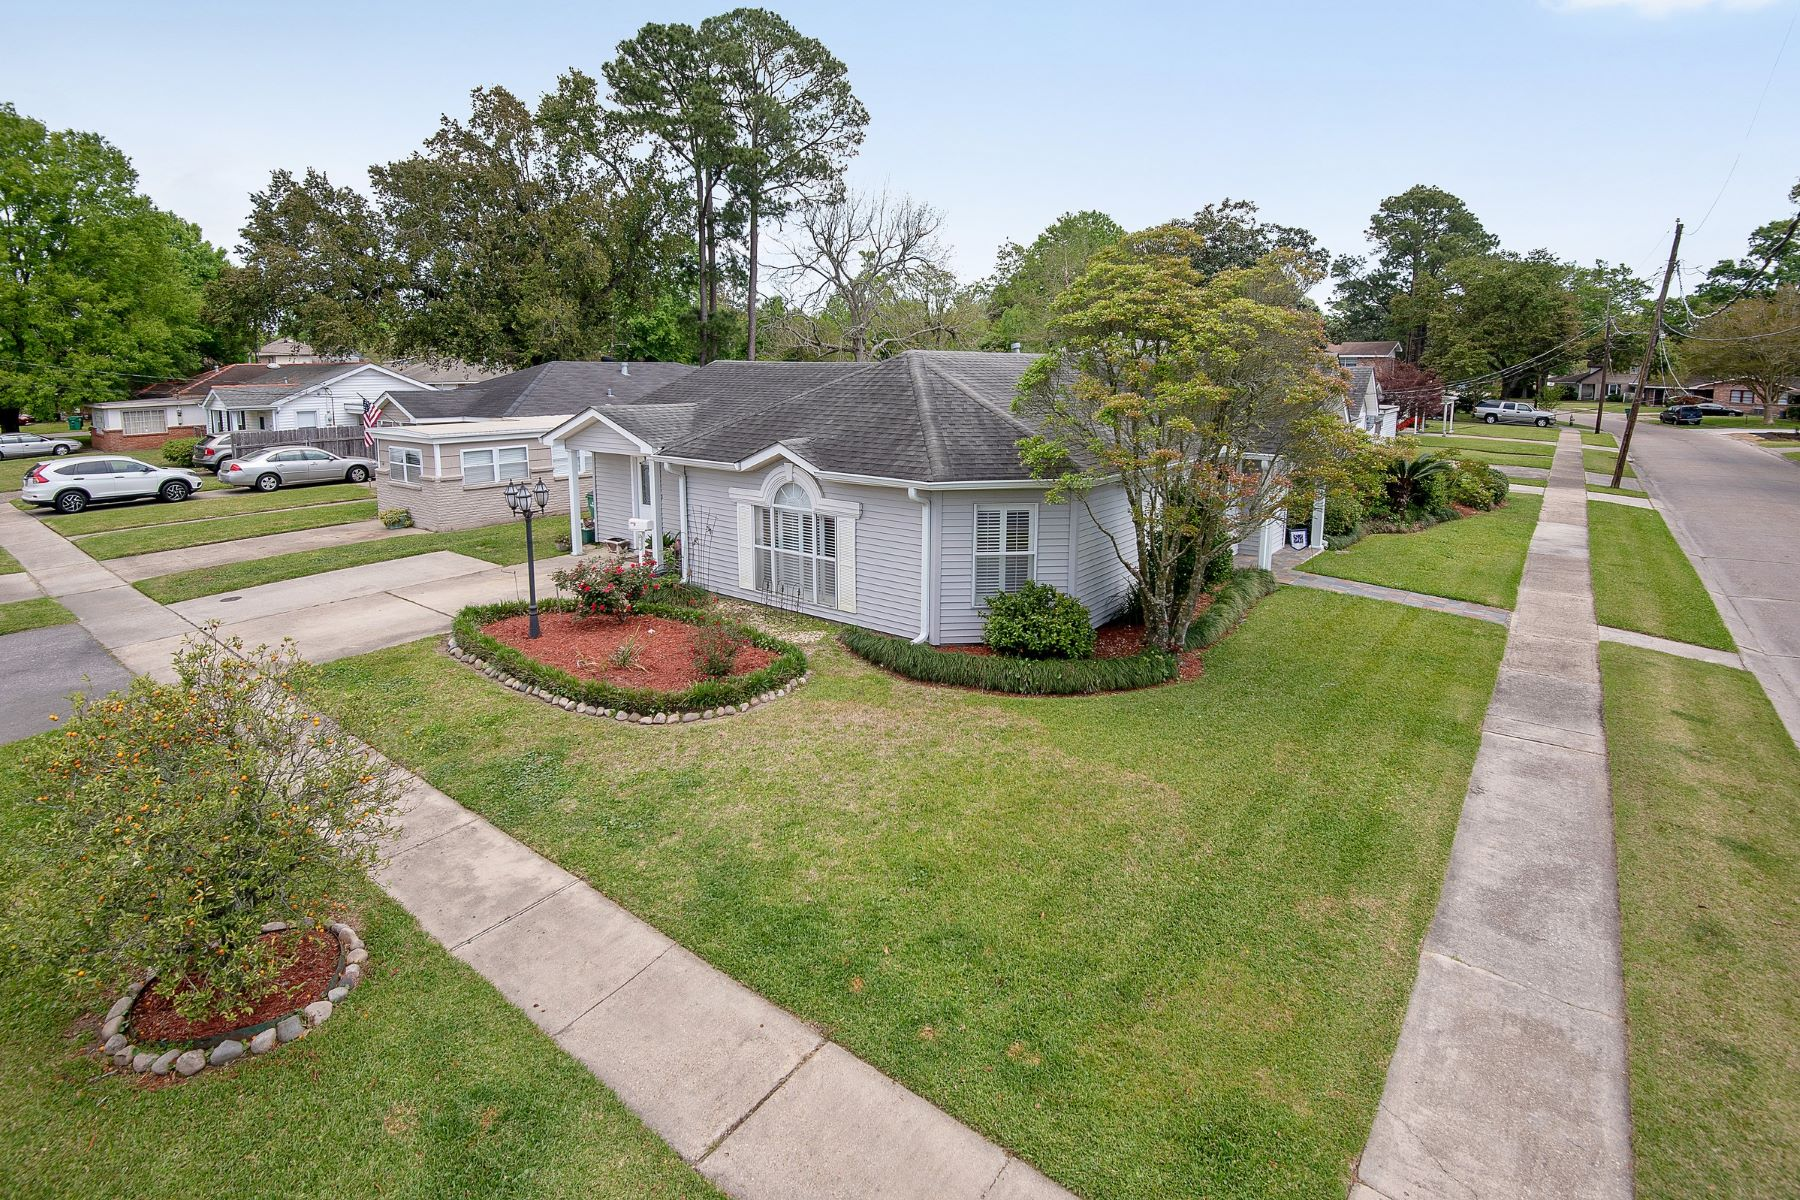 Single Family Homes for Sale at 901 S Dilton Avenue 901 S Dilton Ave River Ridge, Louisiana 70123 United States